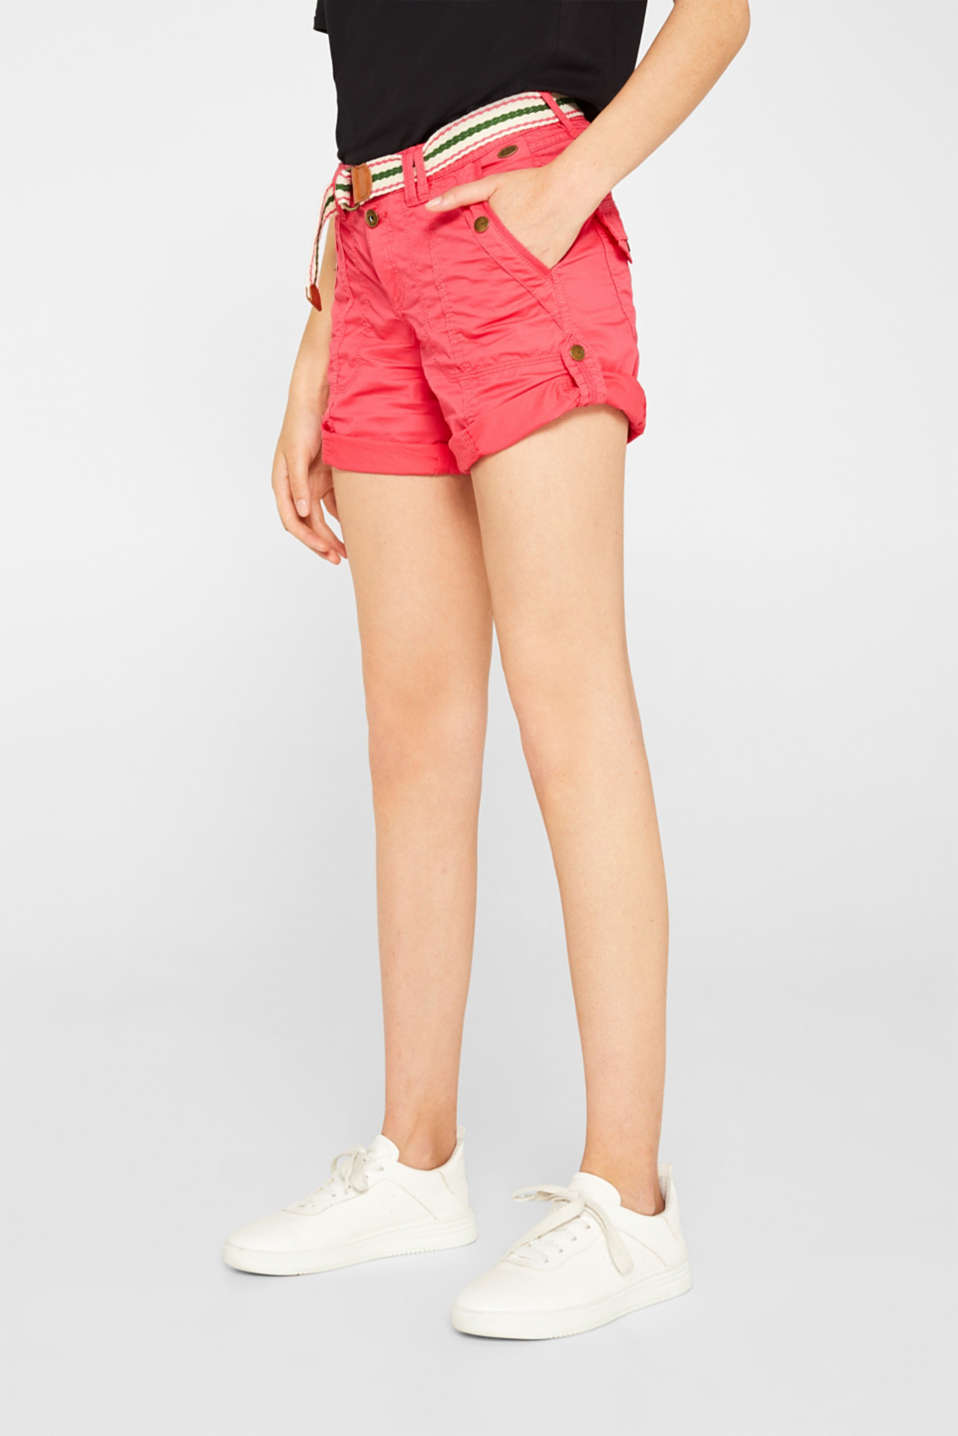 PLAY shorts with a belt, 100% cotton, BERRY RED, detail image number 7